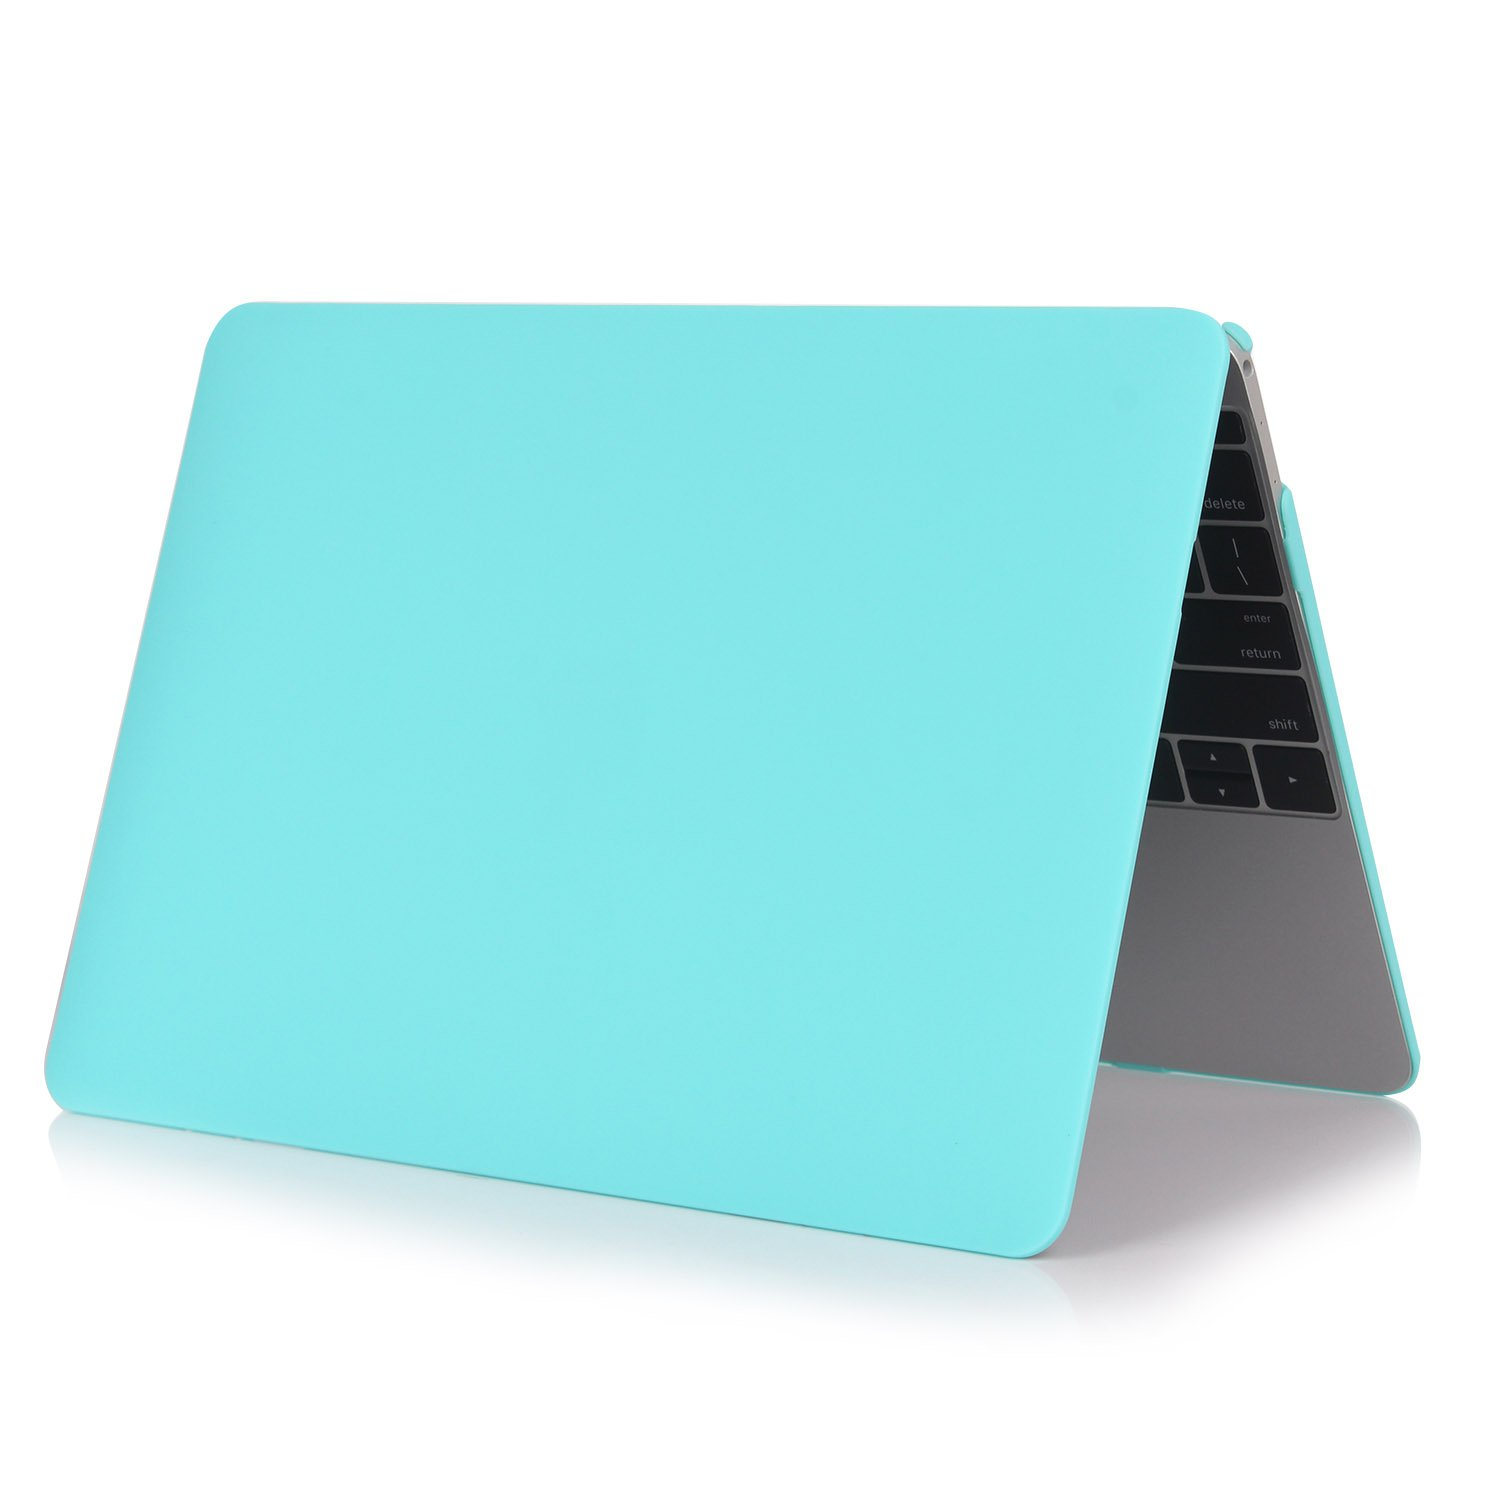 "13.3"" MOSISO TURQUOISE Matte Case for MacBook Air Laptop 9 COLORS FAST FREE SHIPPING USA"